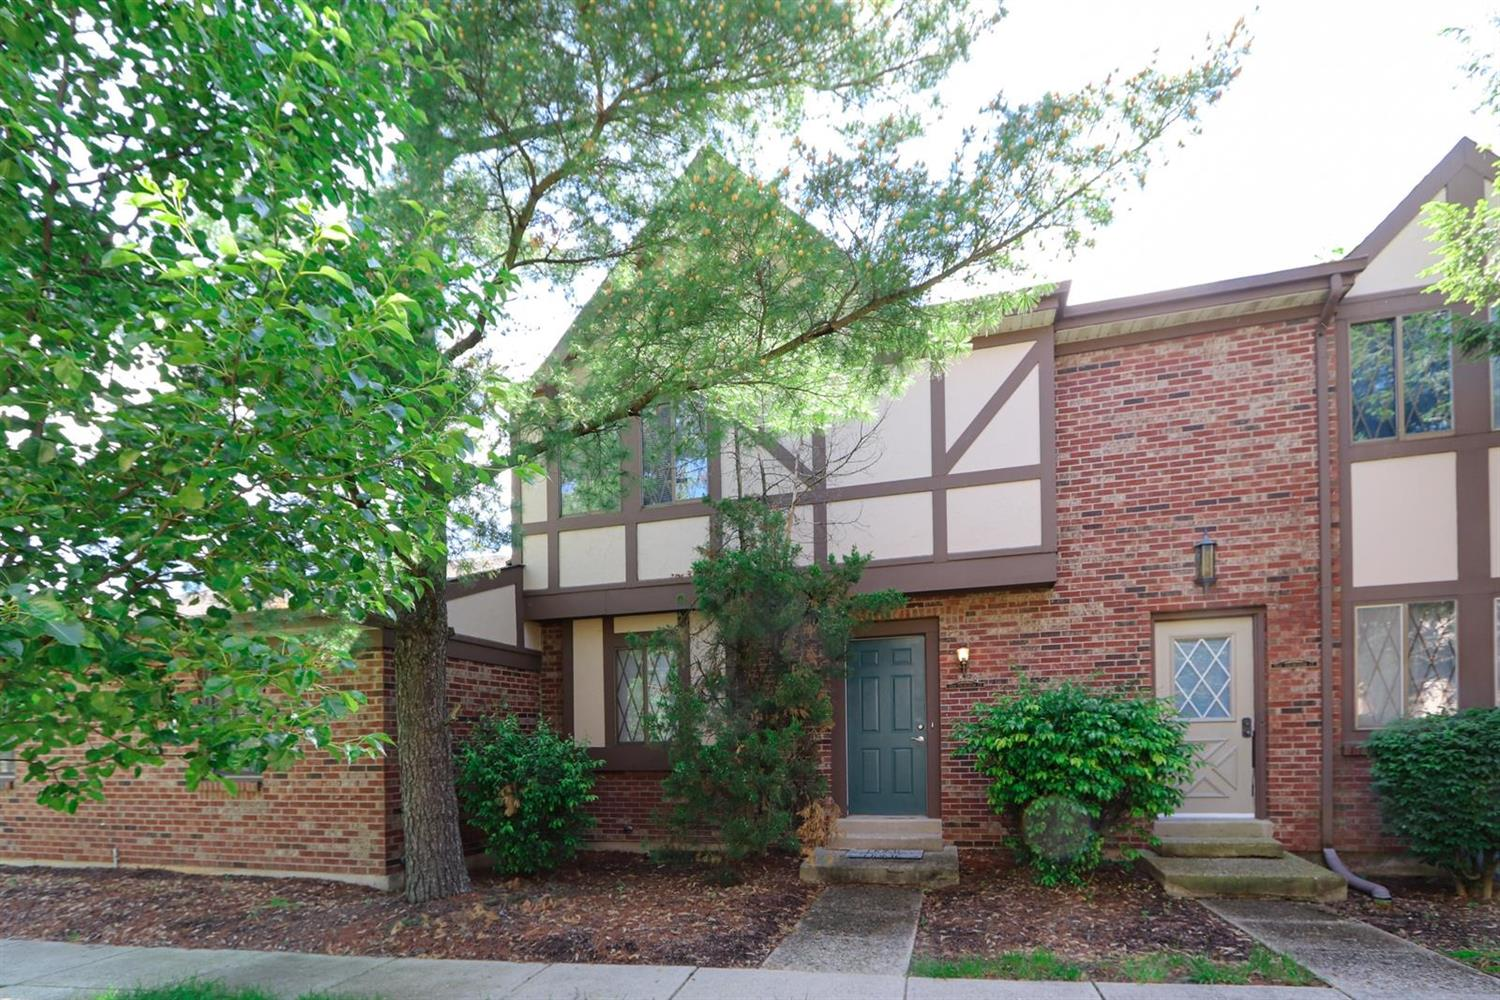 Property for sale at 7529 Exchequer Court, West Chester,  Ohio 45069